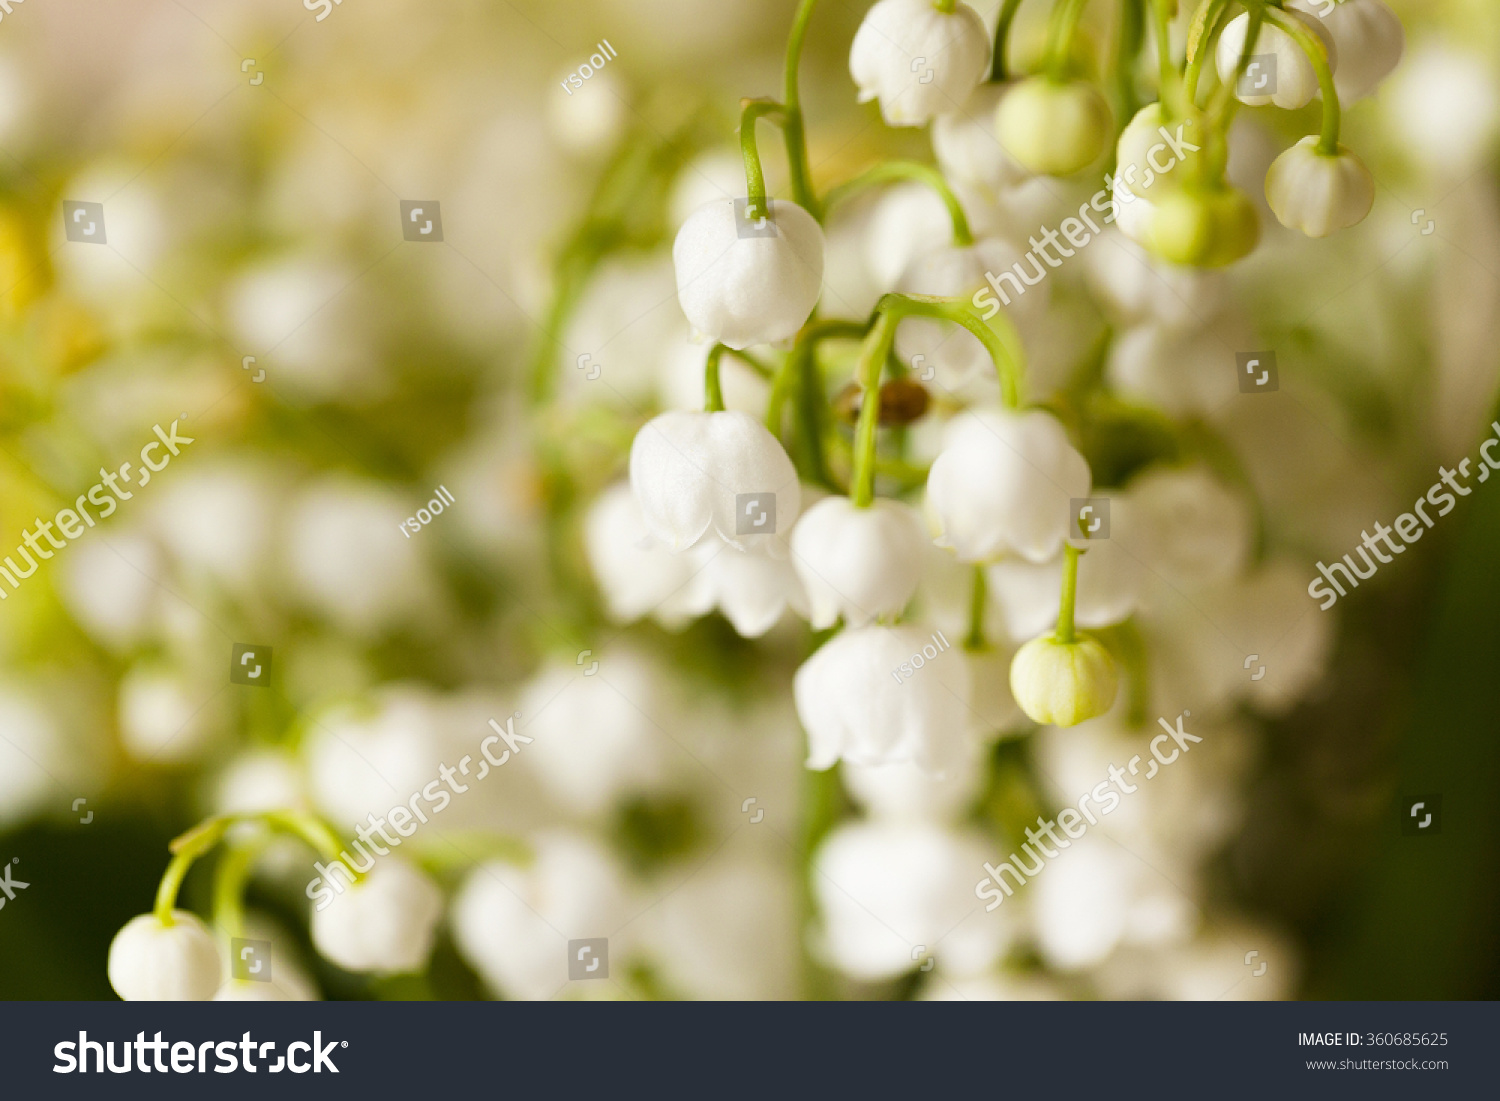 Photographed close up of a small white flower lily of the valley photographed close up of a small white flower lily of the valley ez canvas izmirmasajfo